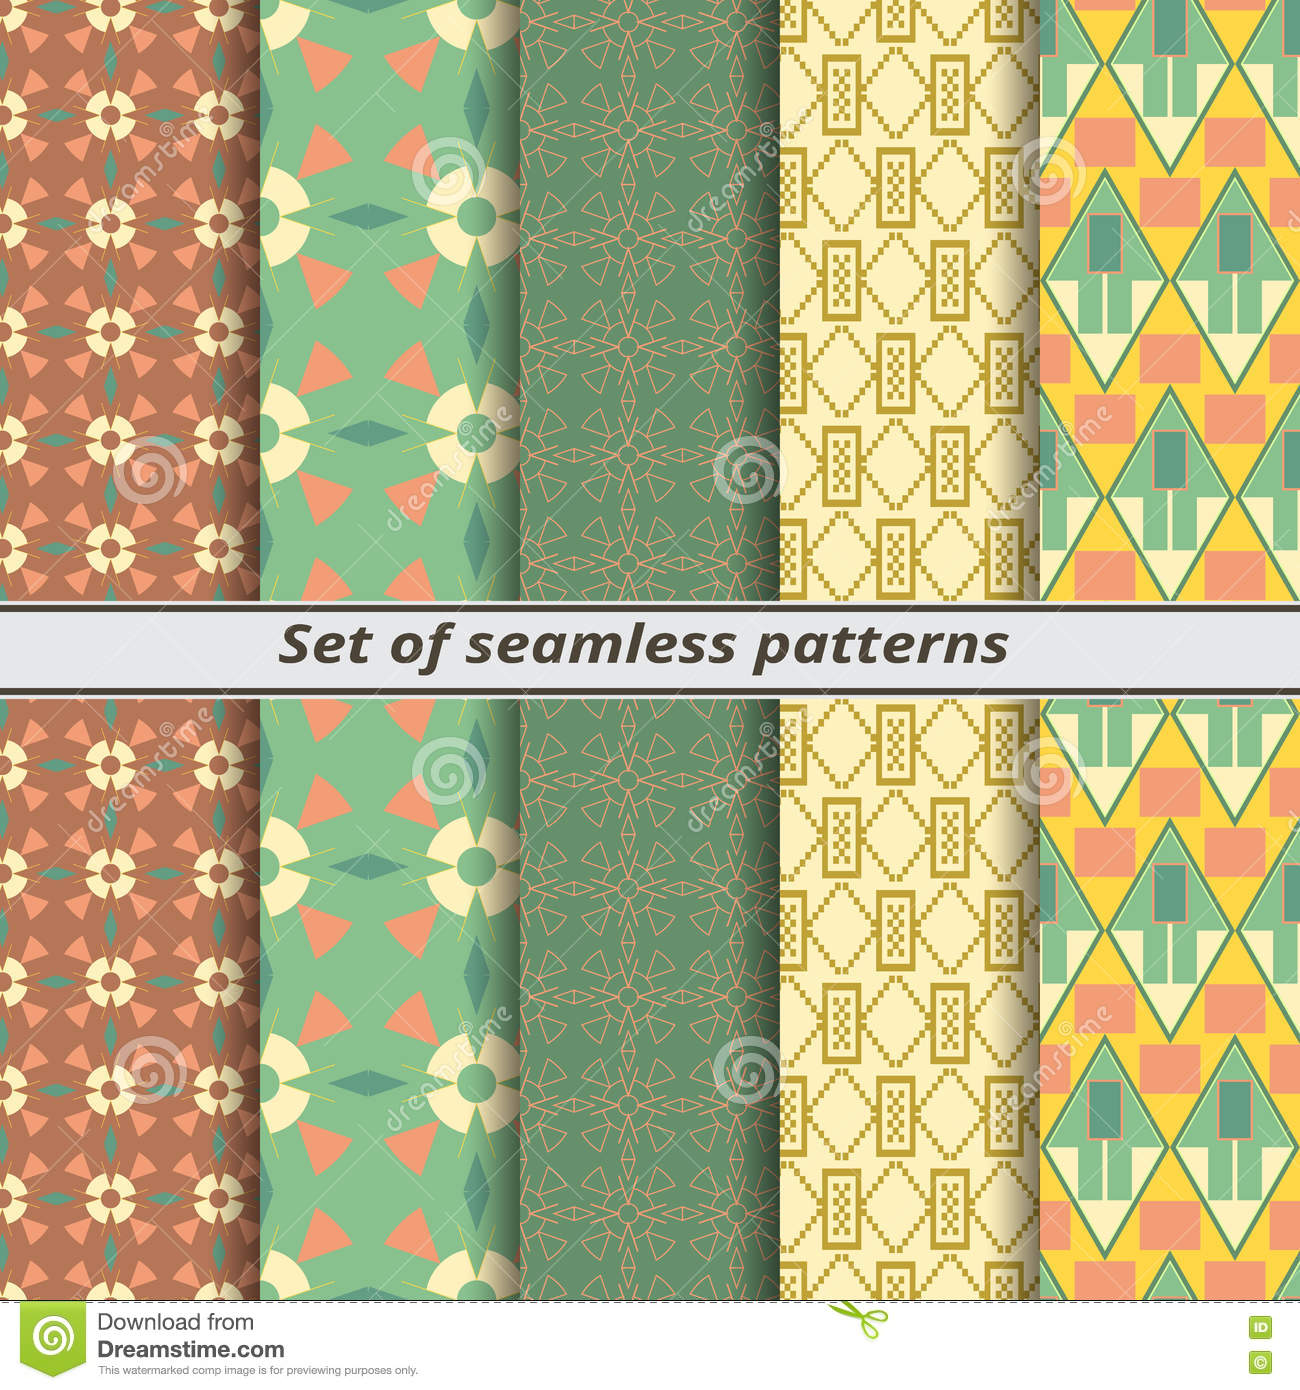 Set of seamless patterns in American style